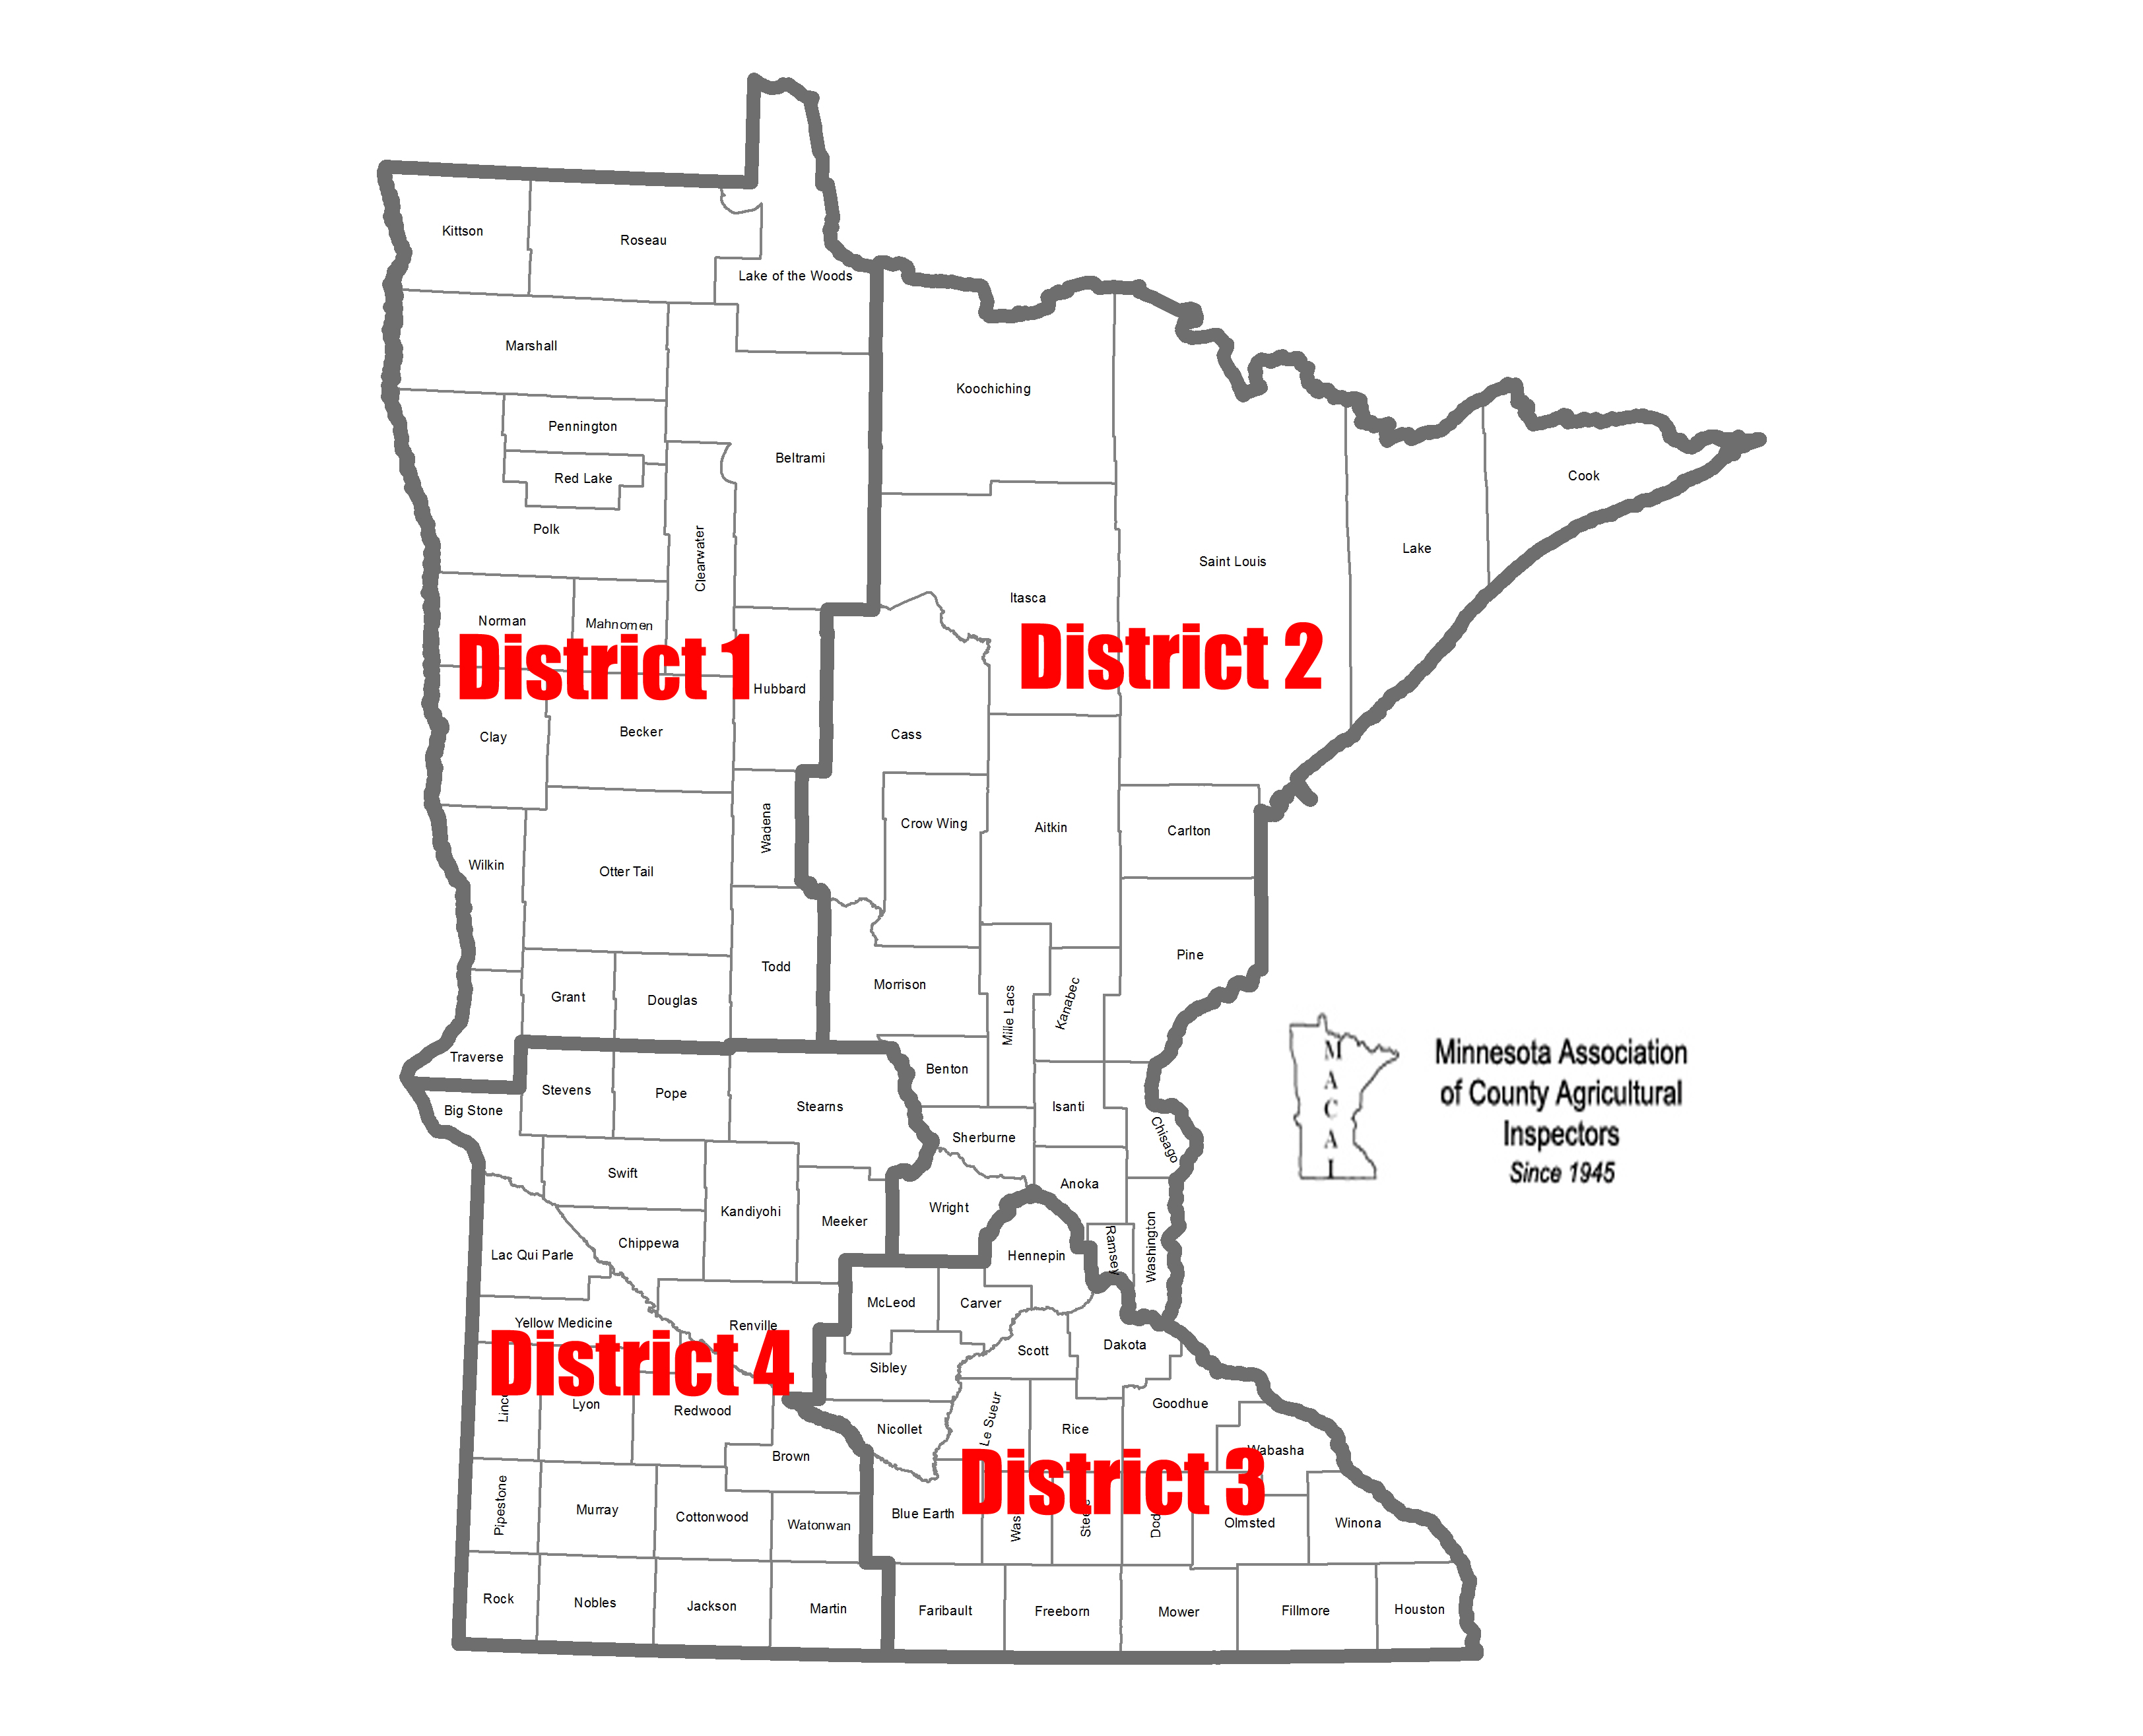 Minnesota County Ag Inspector districts